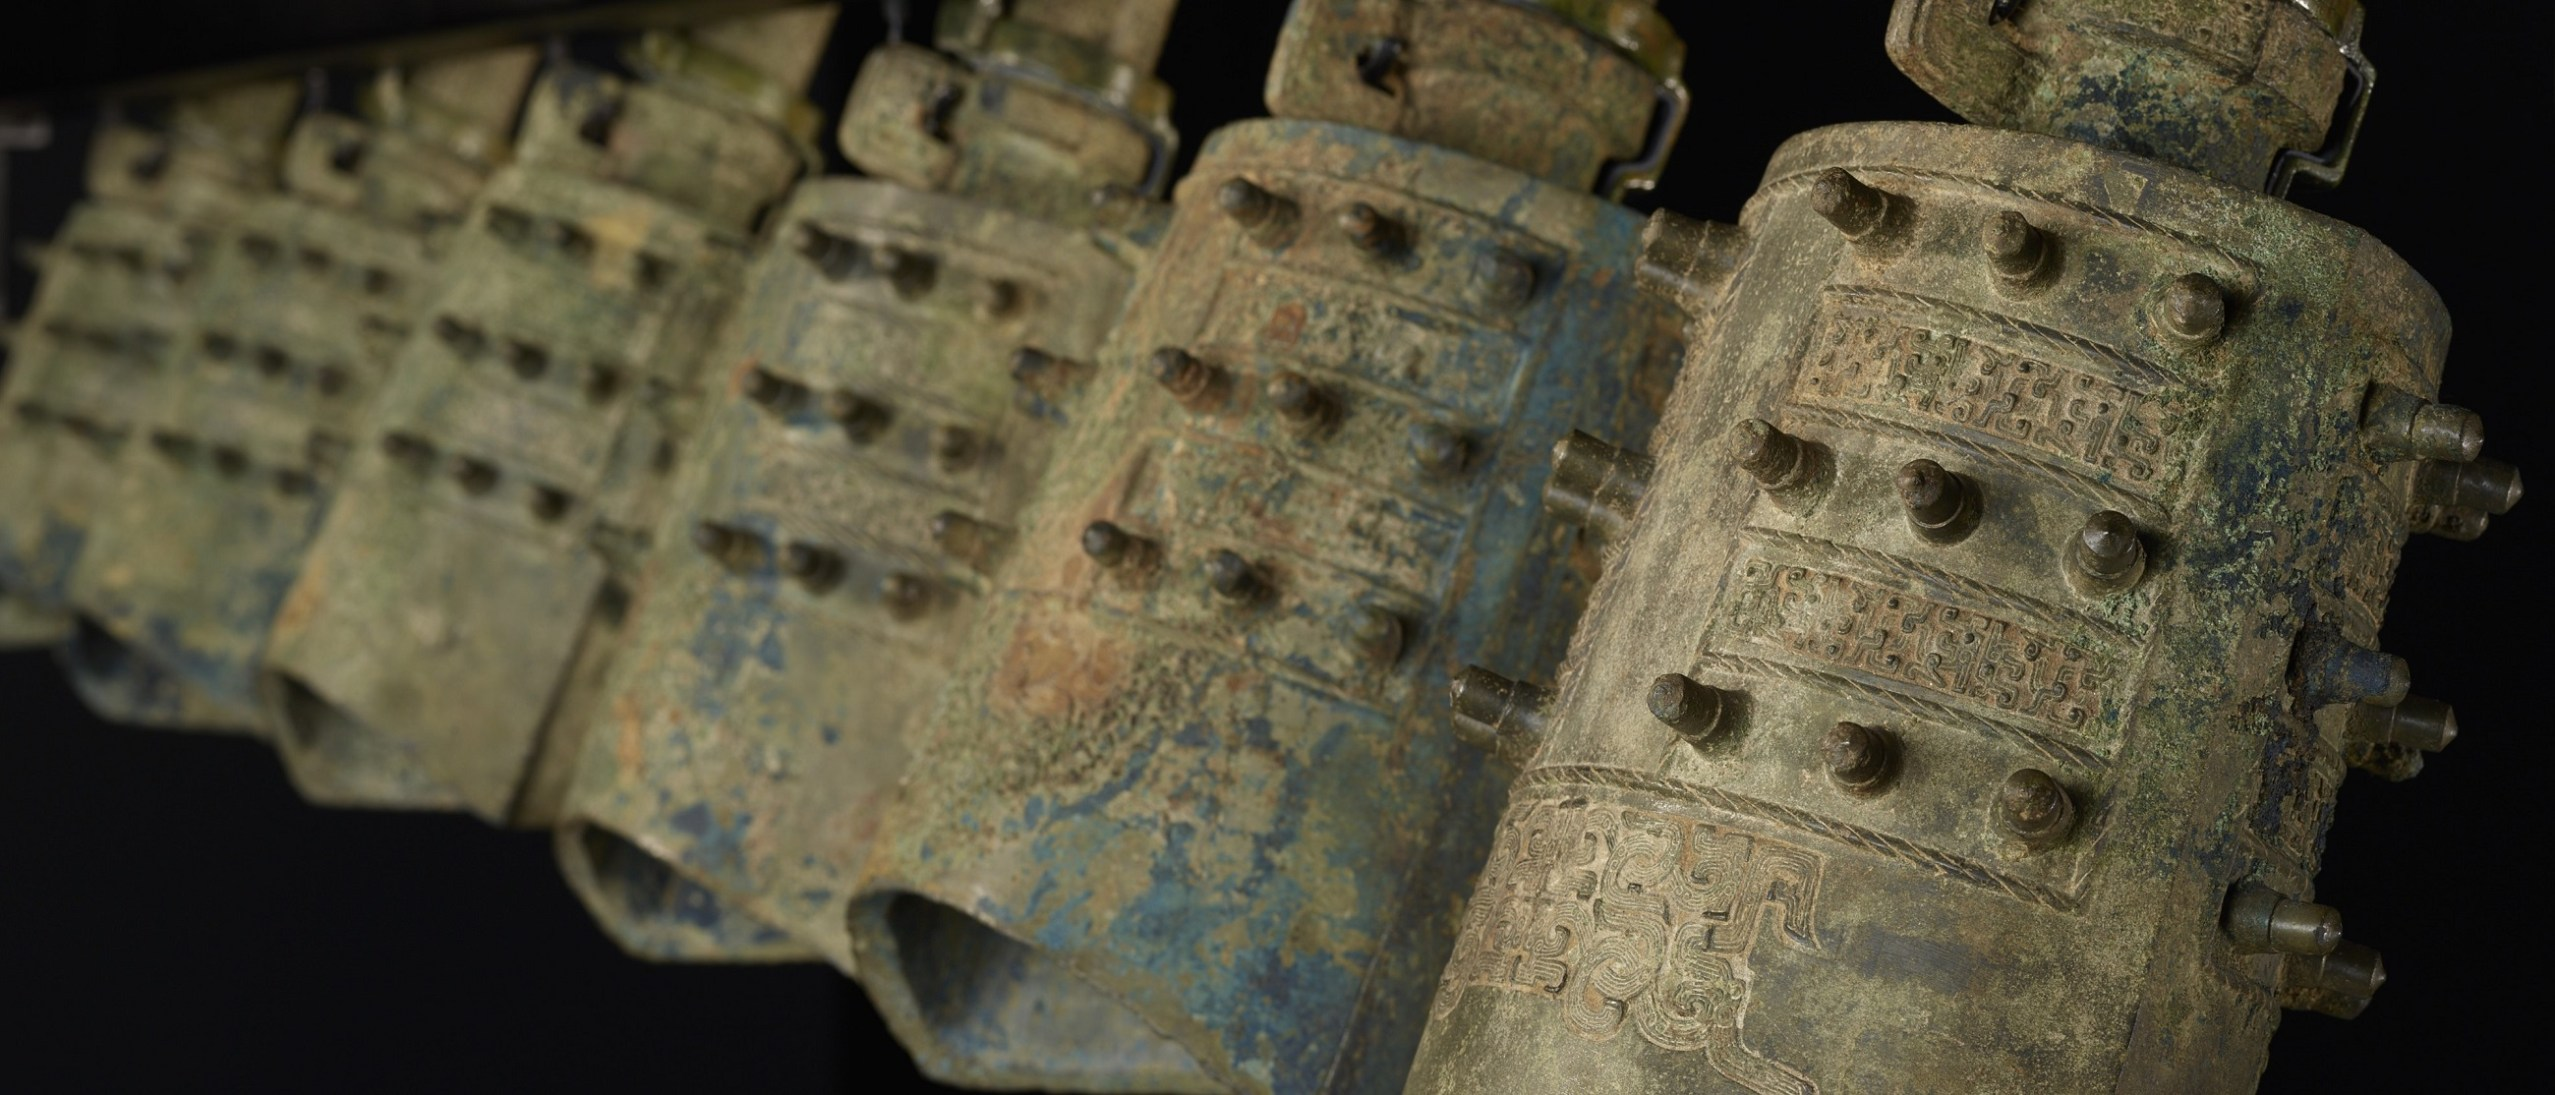 Detail image, ancient Chinese bells from the Resound: Ancient Bells of China exhibition